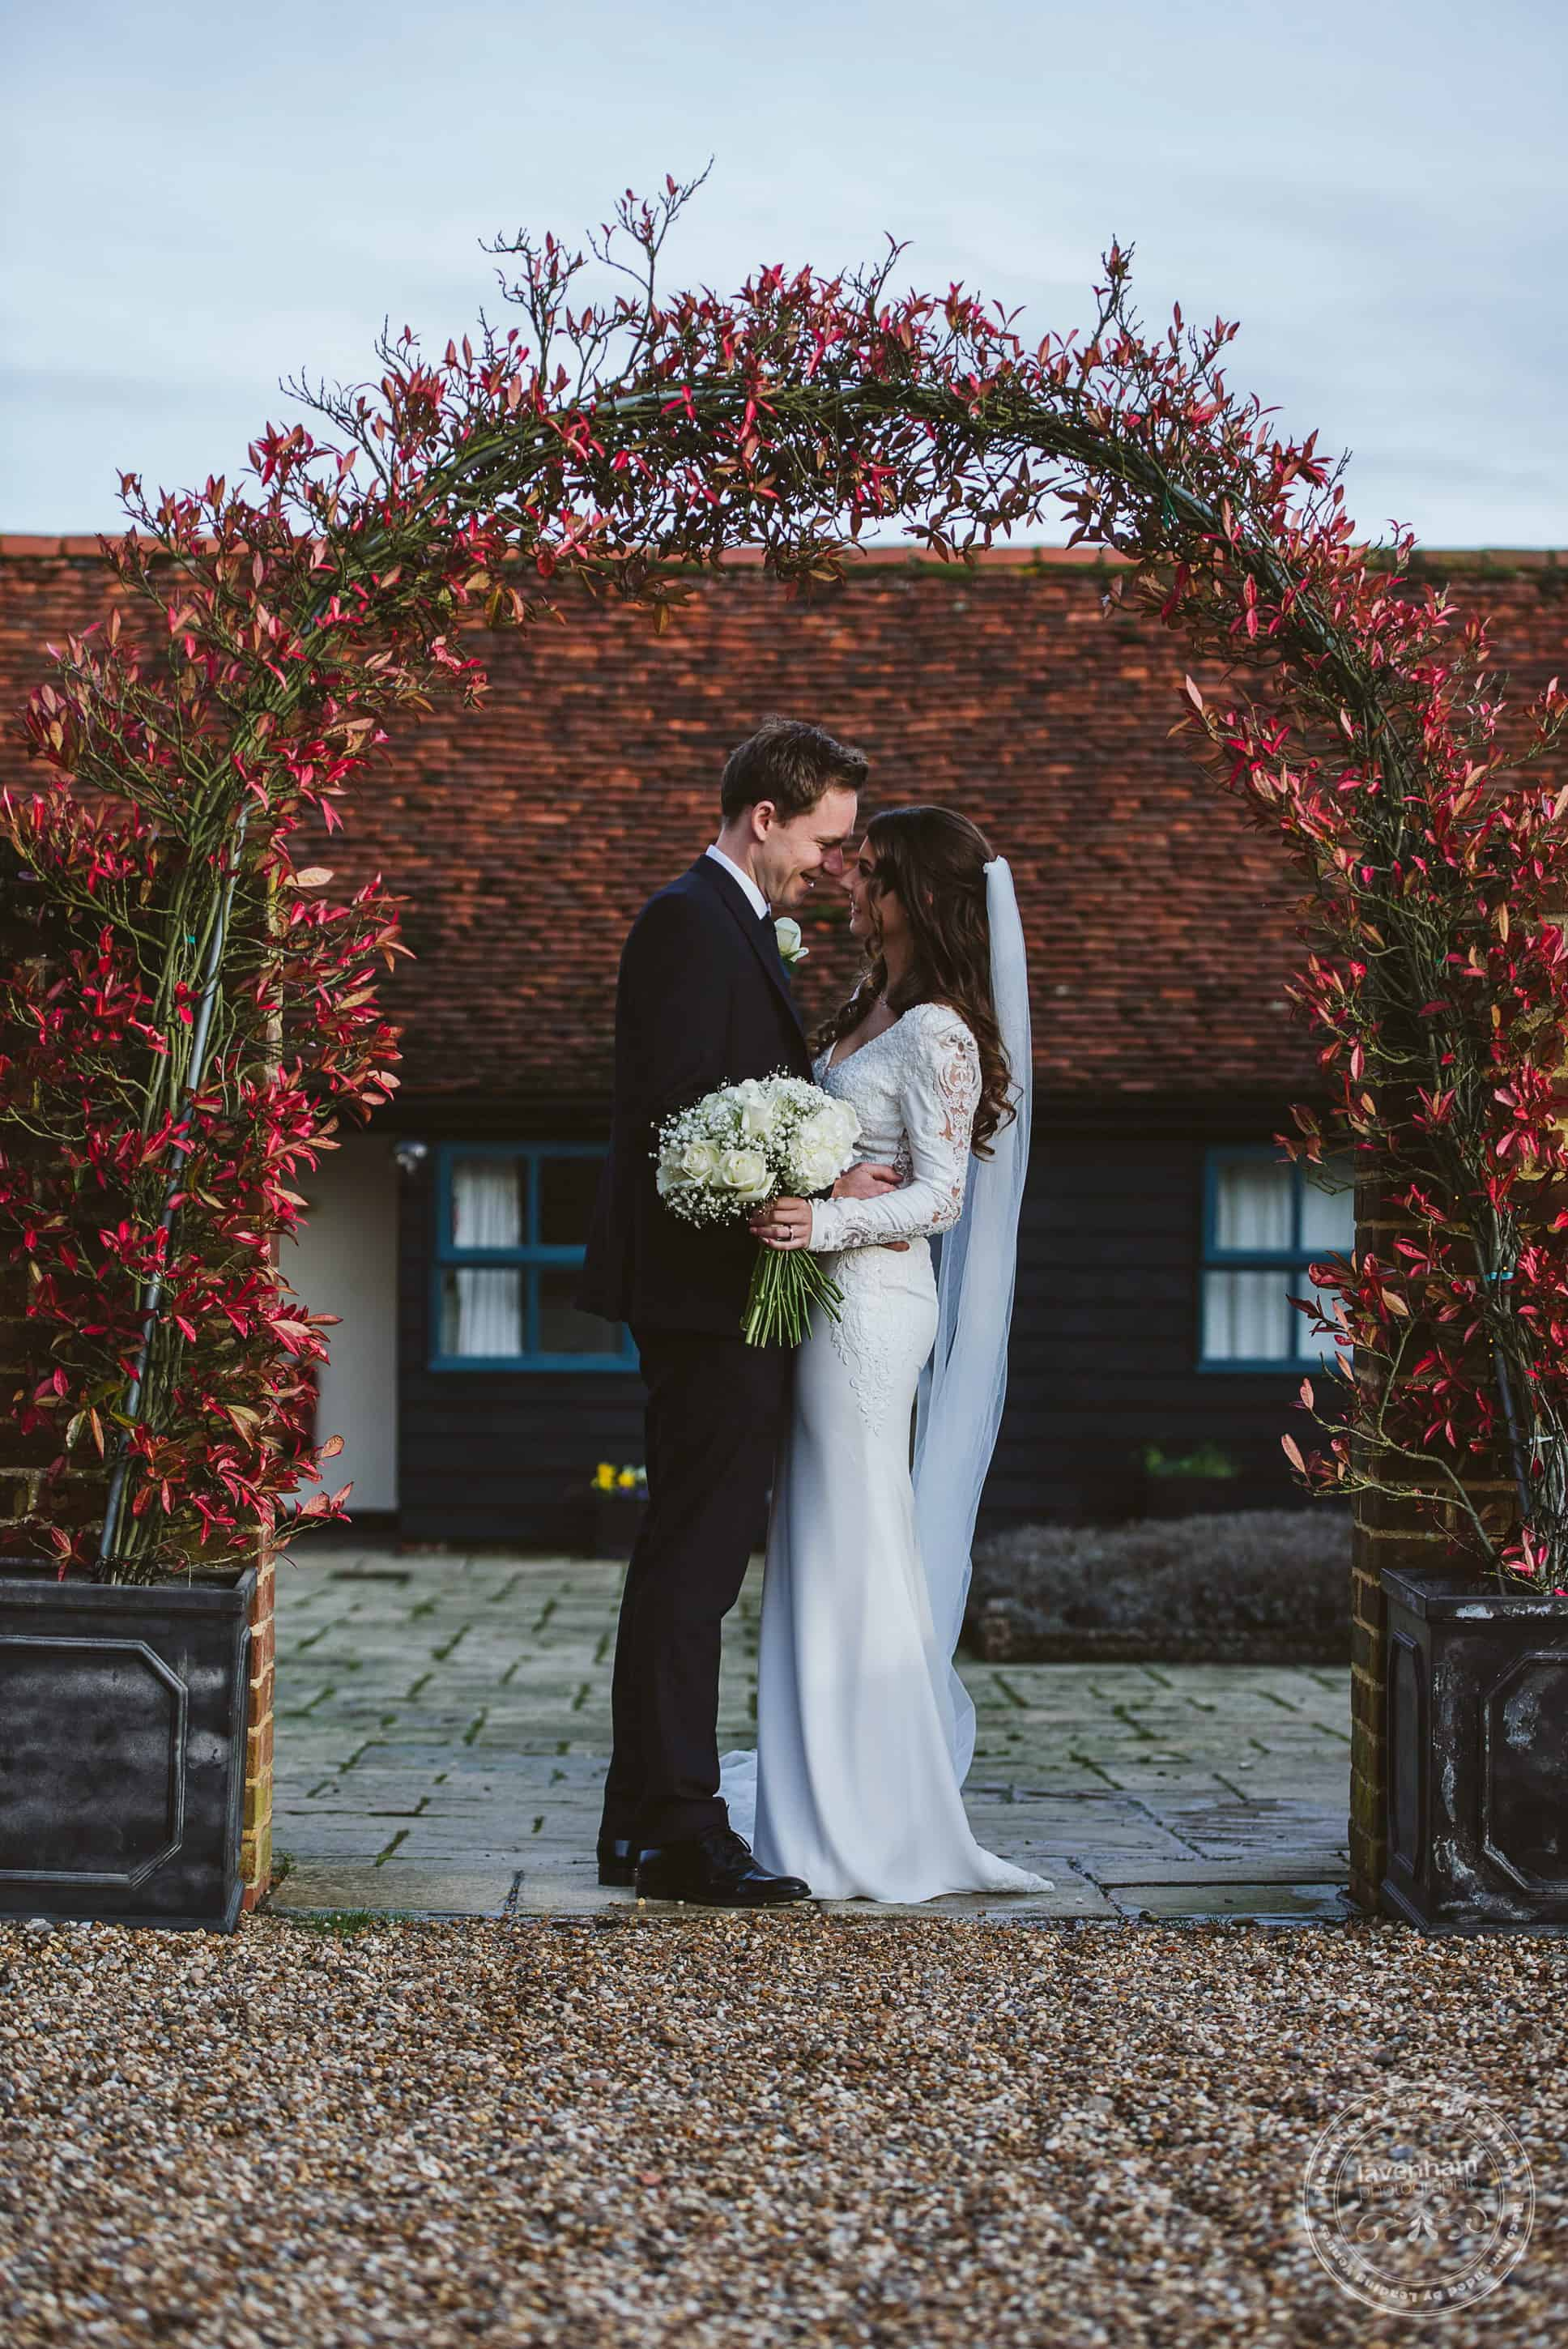 221219 Leez Priory Wedding Photoraphy 063